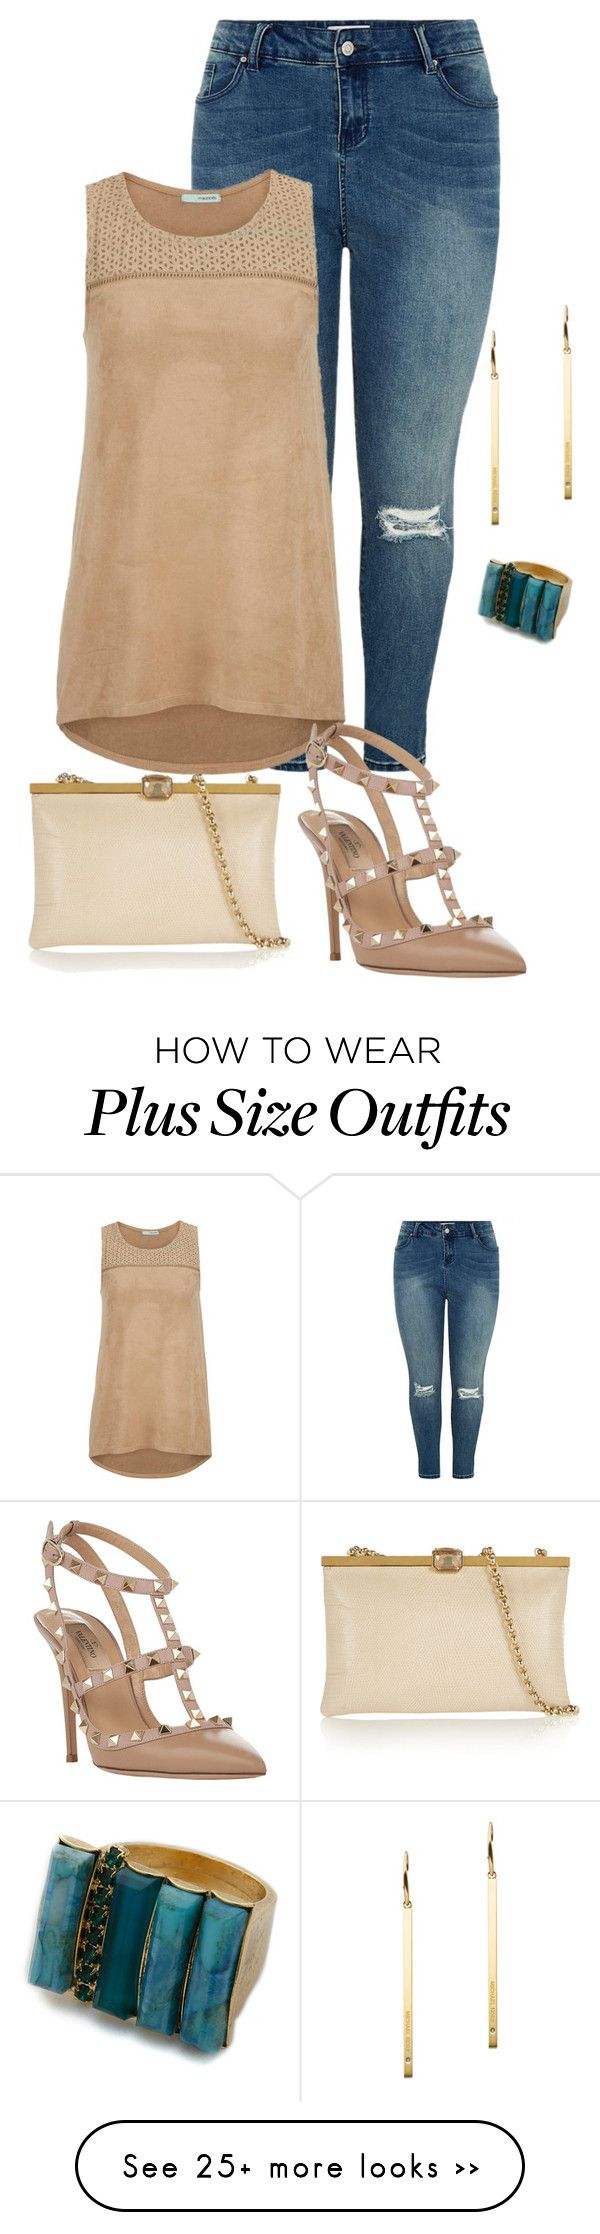 """""""plus size simple and chic night out"""" by kristie-payne on Polyvore featuring maurices, Dolce&Gabbana, Michael Kors, Valentino and Elizabeth Cole"""